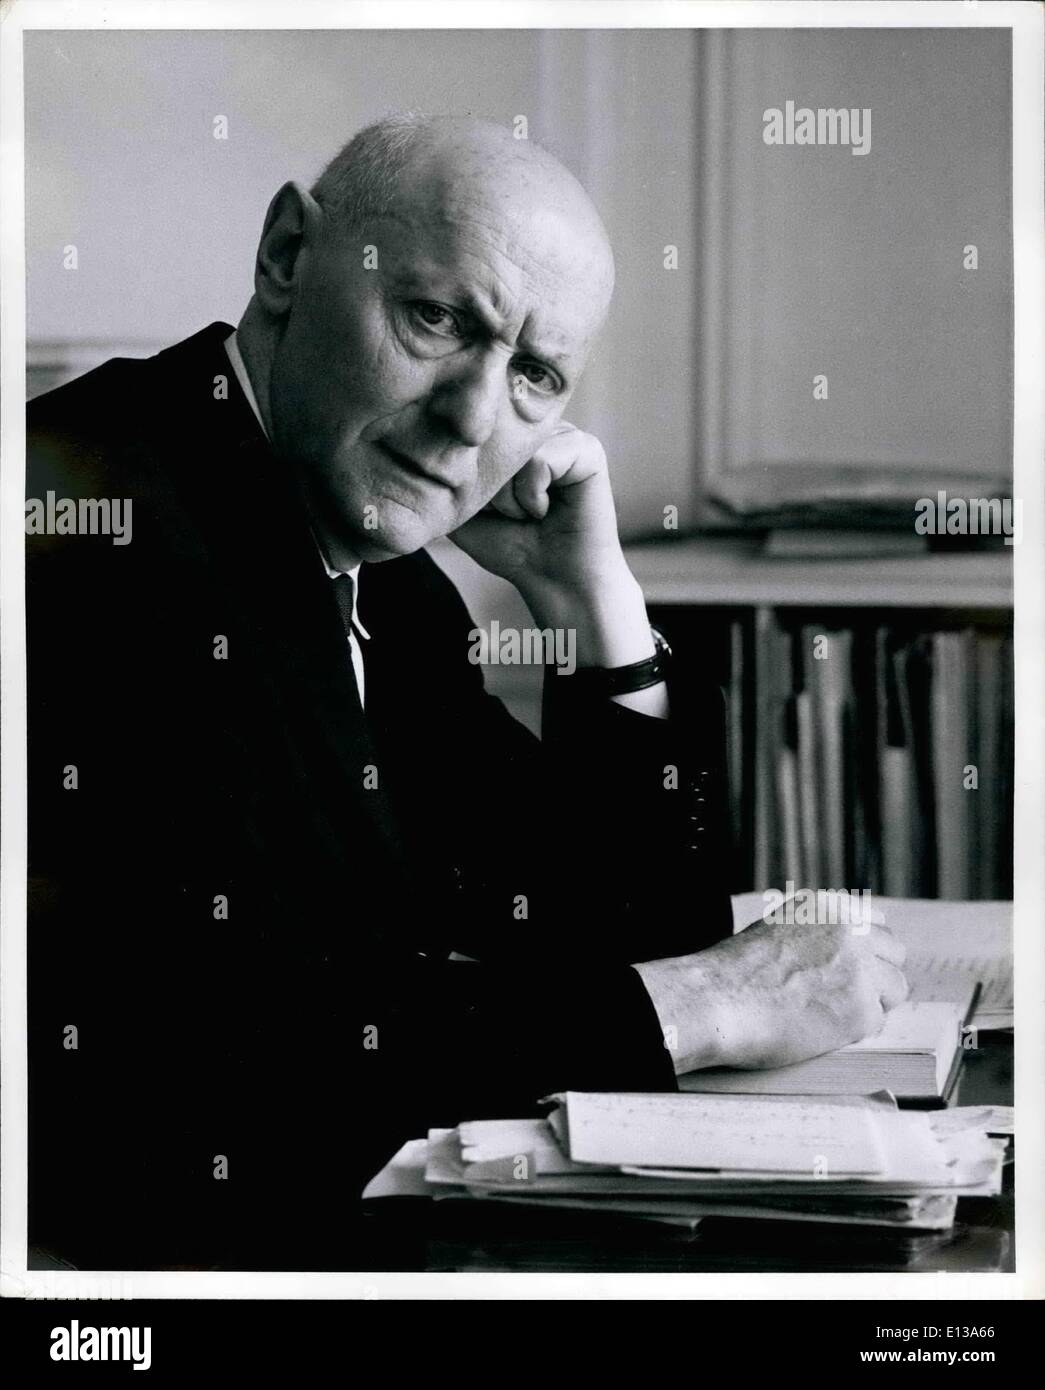 Feb. 29, 2012 - Nobel prize in Literature 1978 Isaac B. Singer(from stoch) - Stock Image